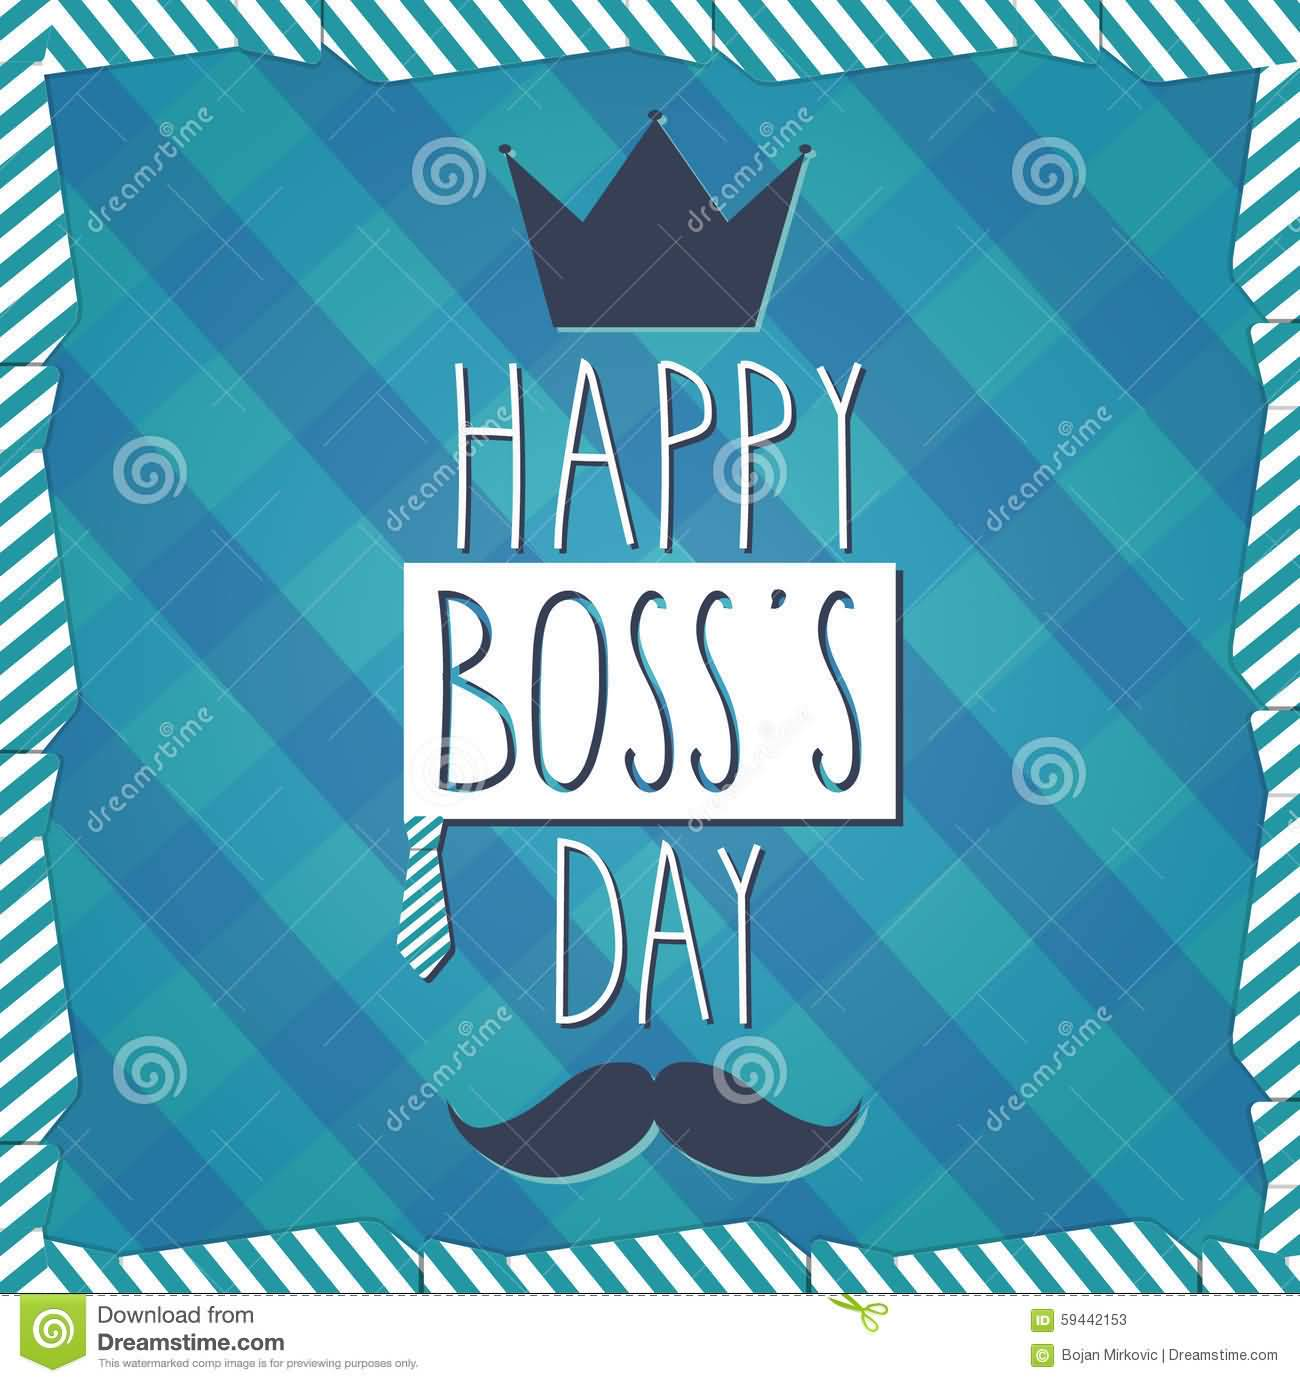 40 Most Beautiful Happy Boss Day 2016 Greetings Pictures And Images